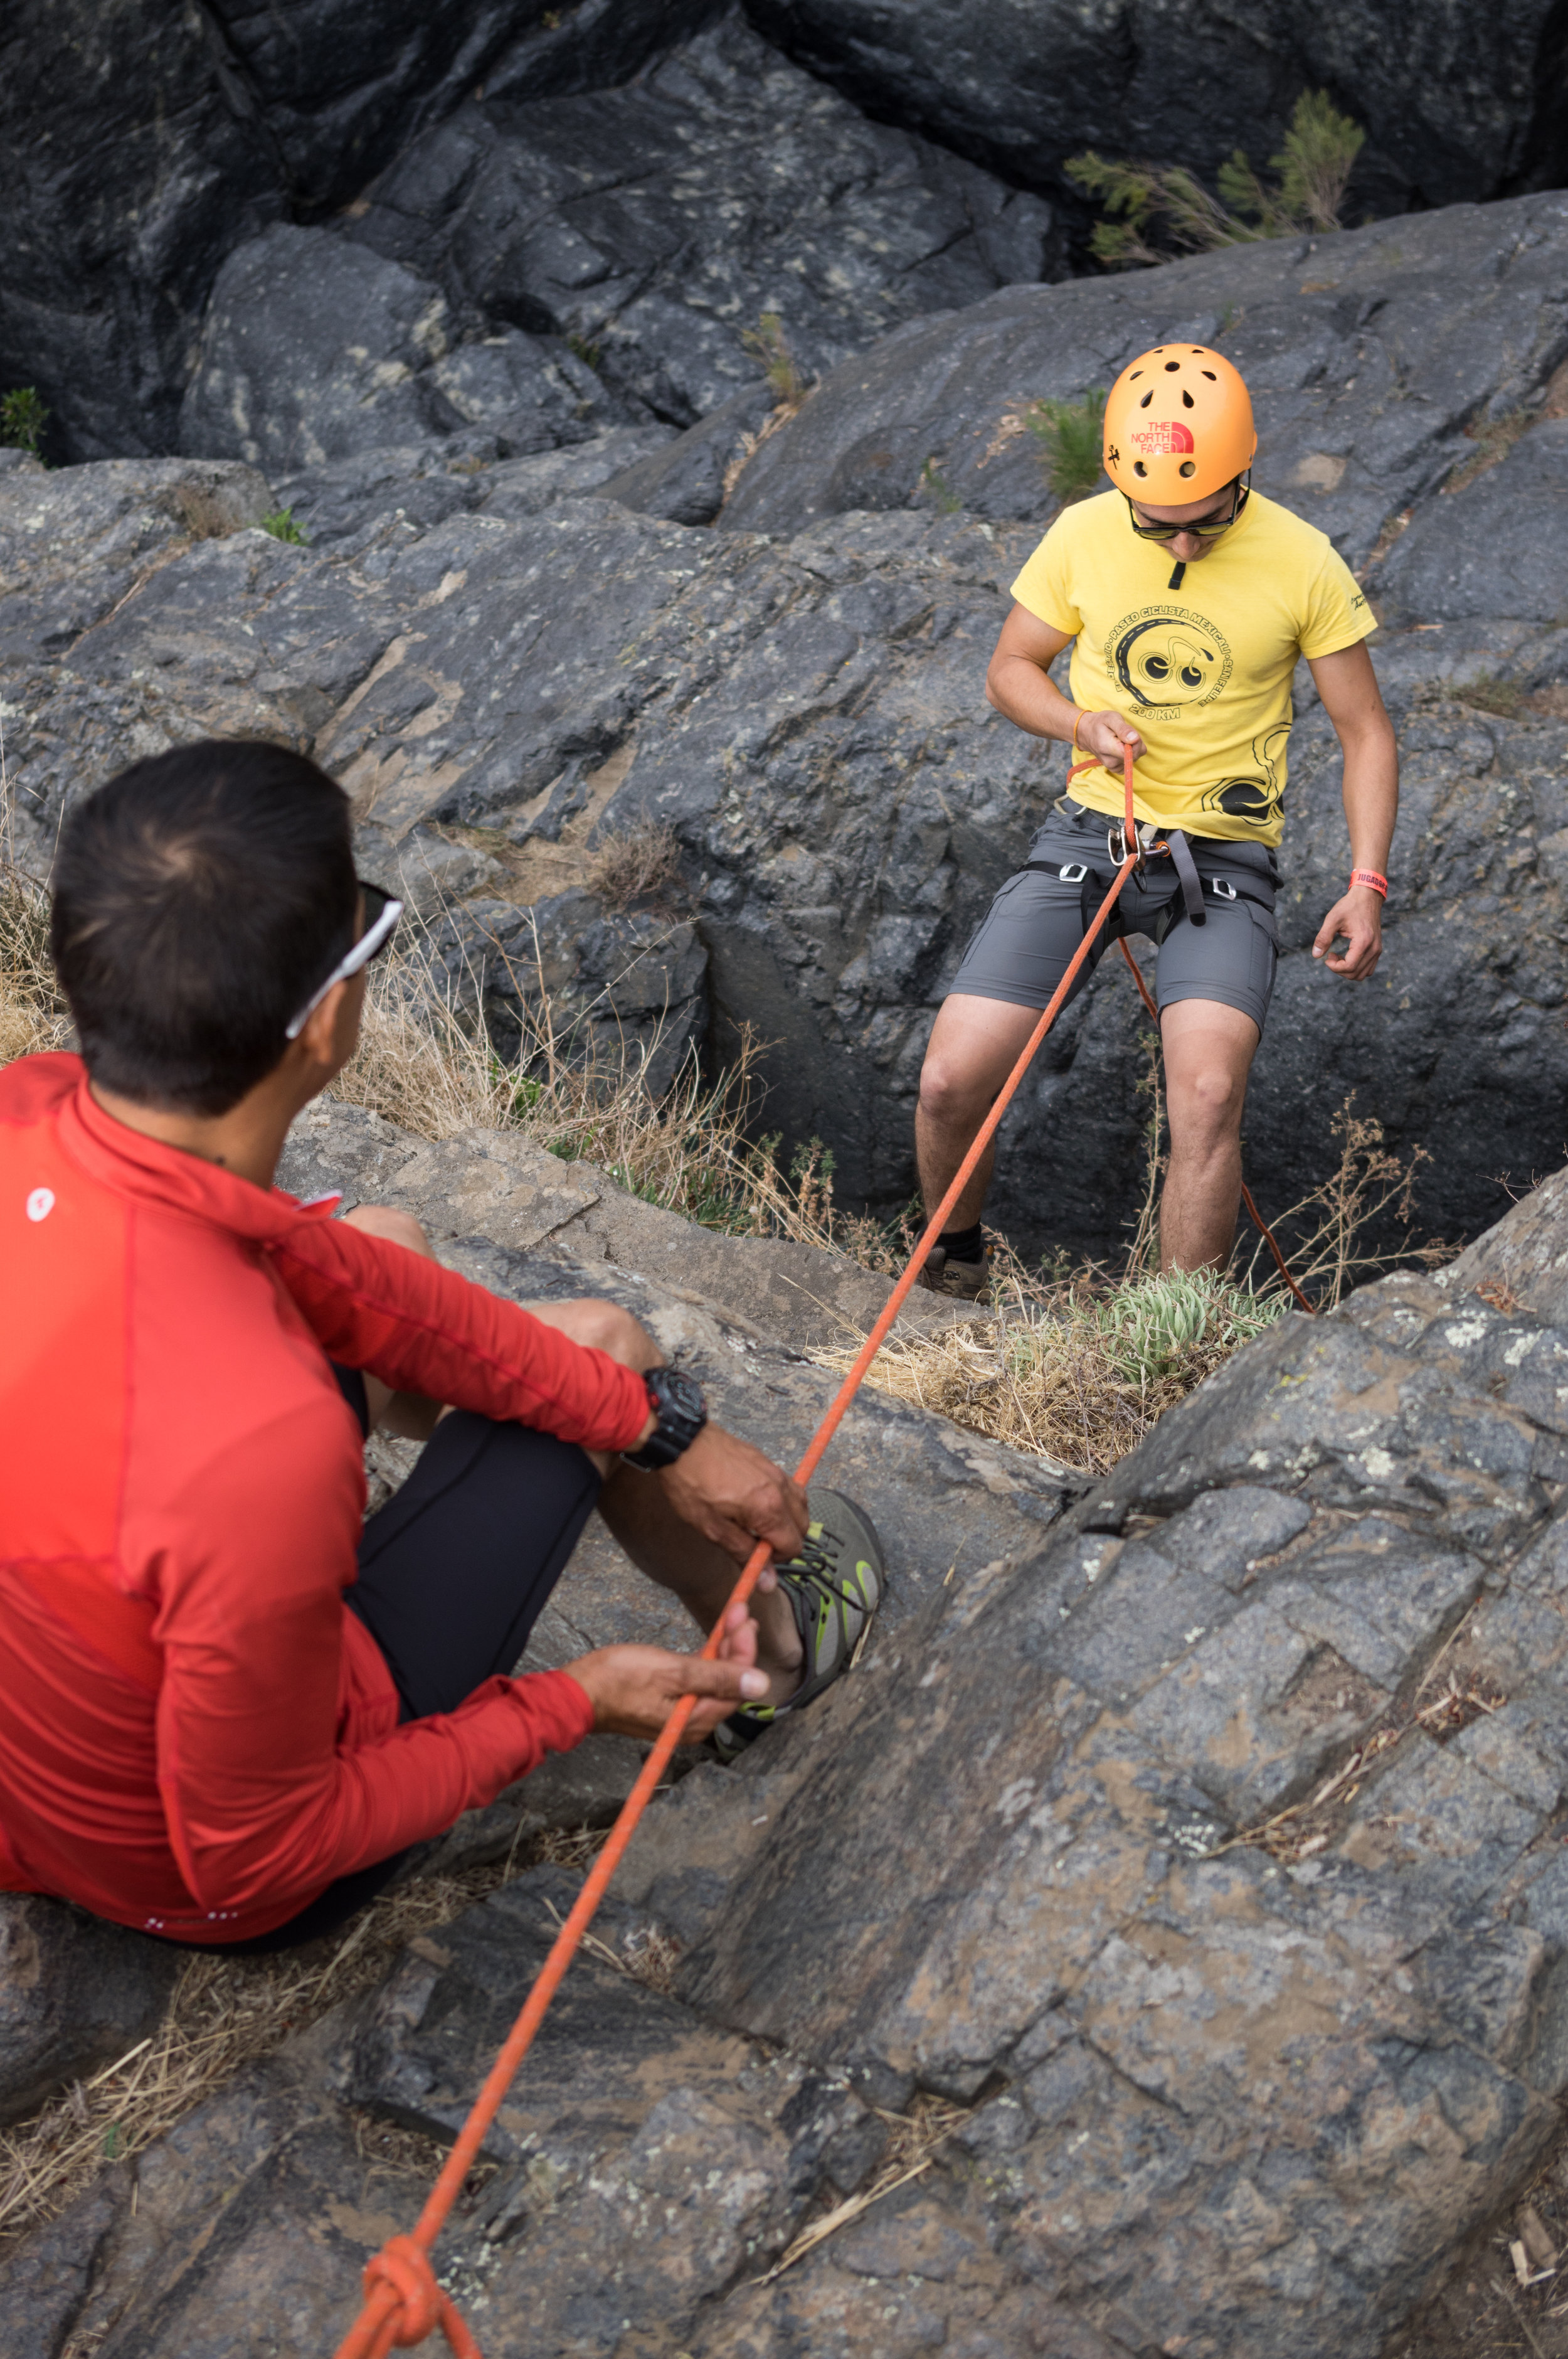 Sebastian (right) begins his first descent down a 15 meter wall.